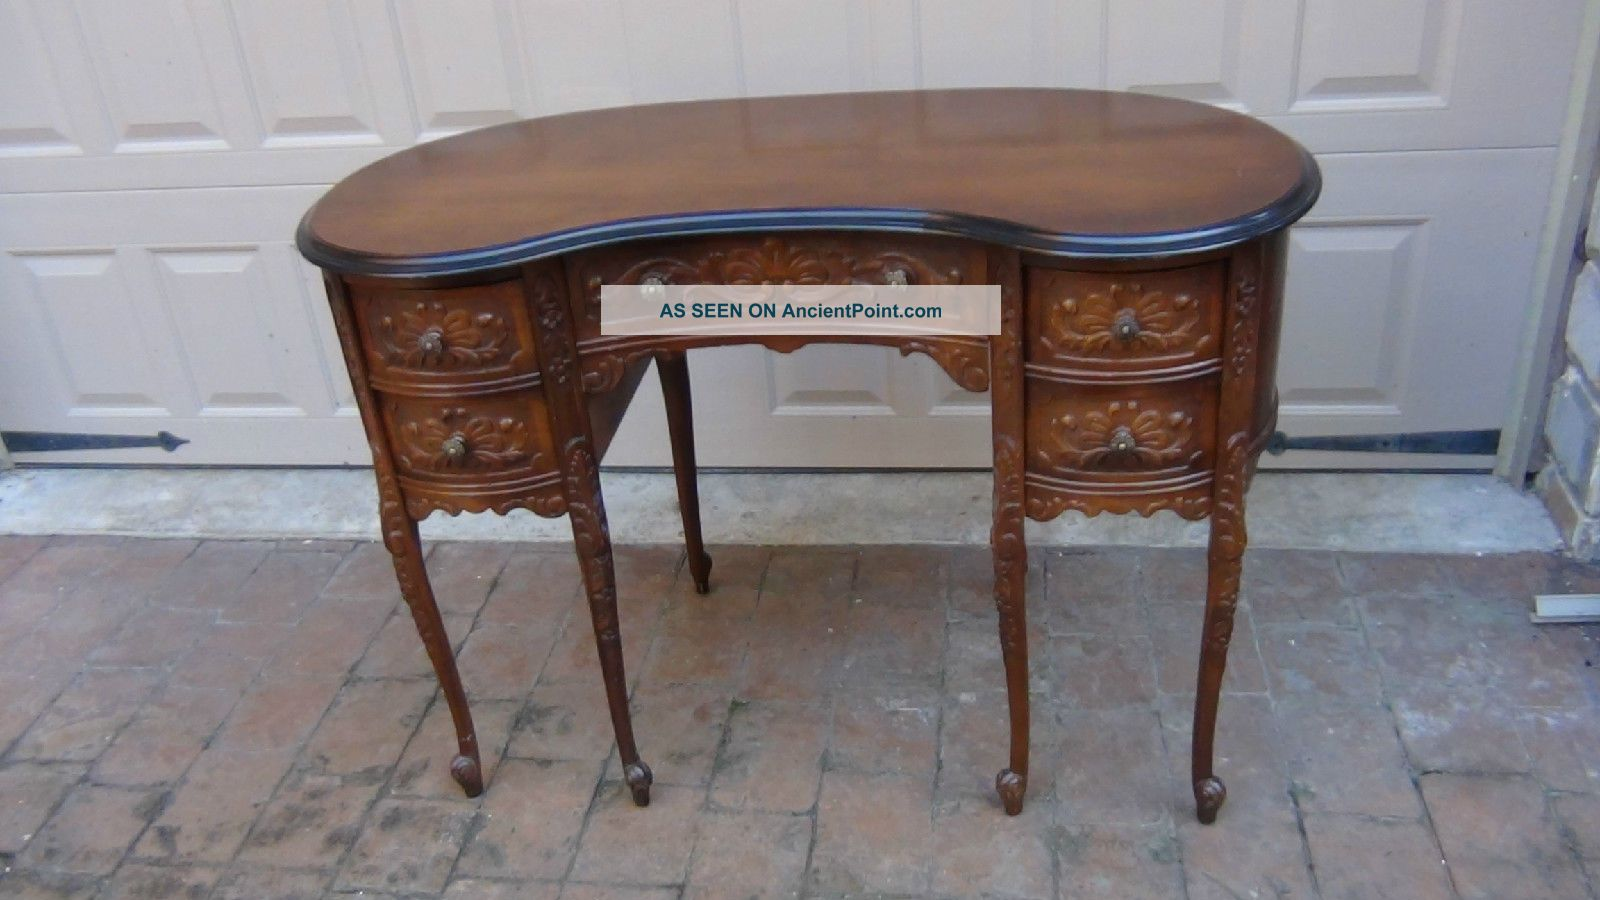 Antique French Walnut 6 Legs,  4 Drawers Victorian Carved Kidney Desk Bureau 1800-1899 photo